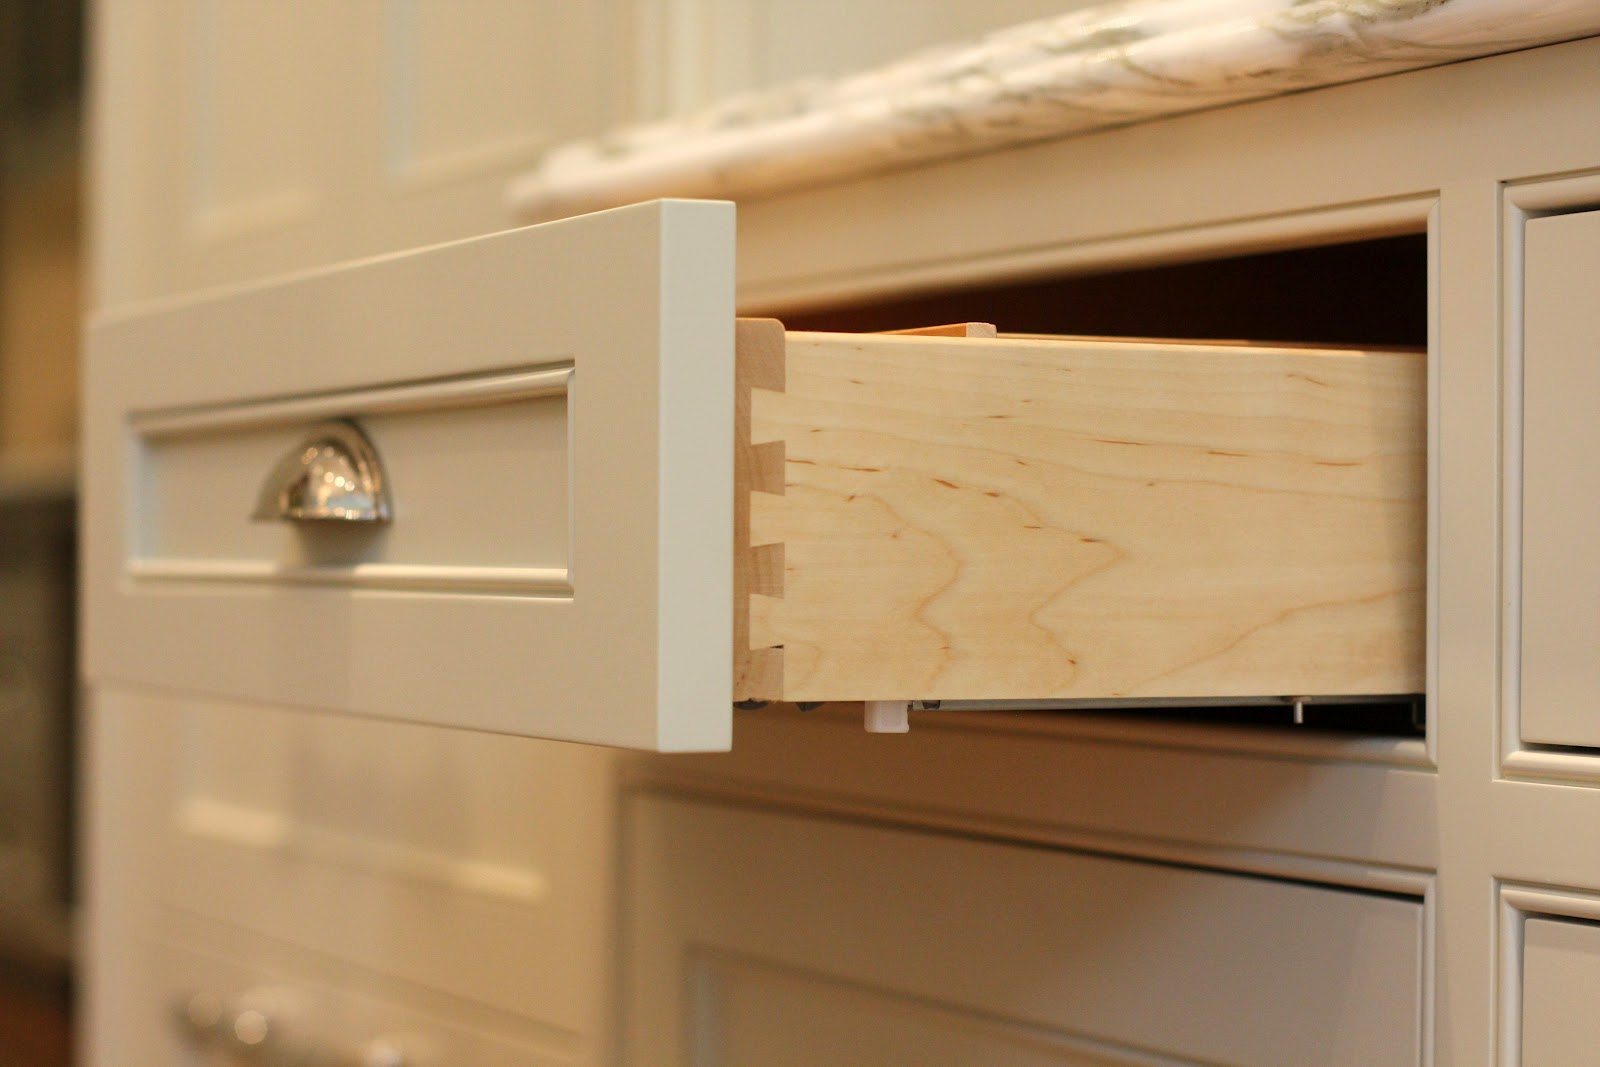 What Is An Inset Drawer?